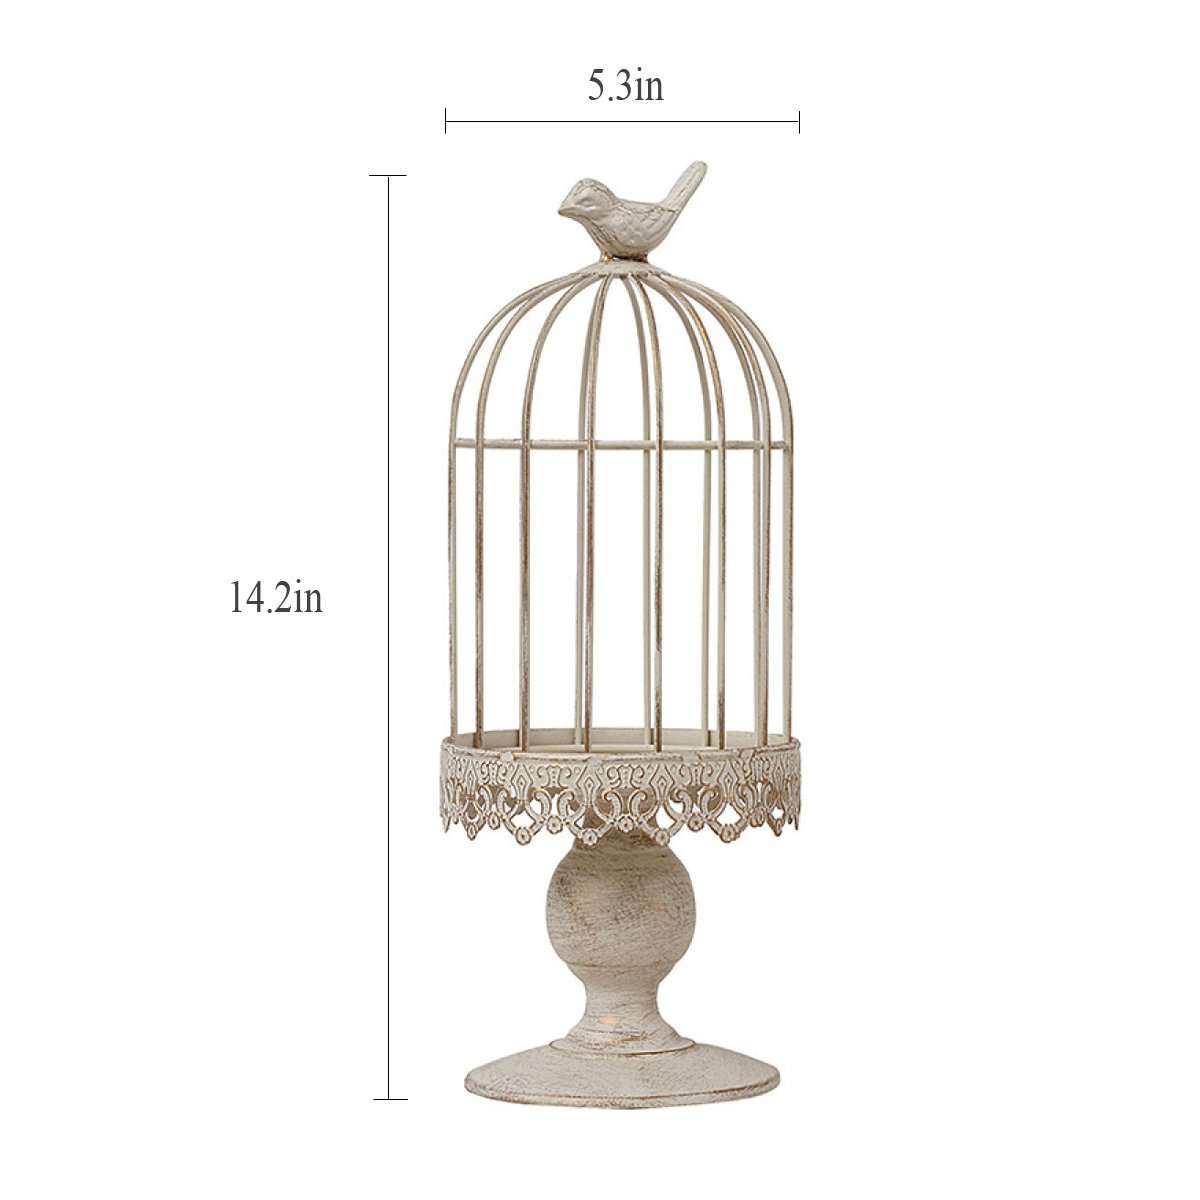 L;IAN Flower Pot Rack Continental Iron Decoration Bird cage Candle Taiwan Wedding American Country Romantic Birthday Products